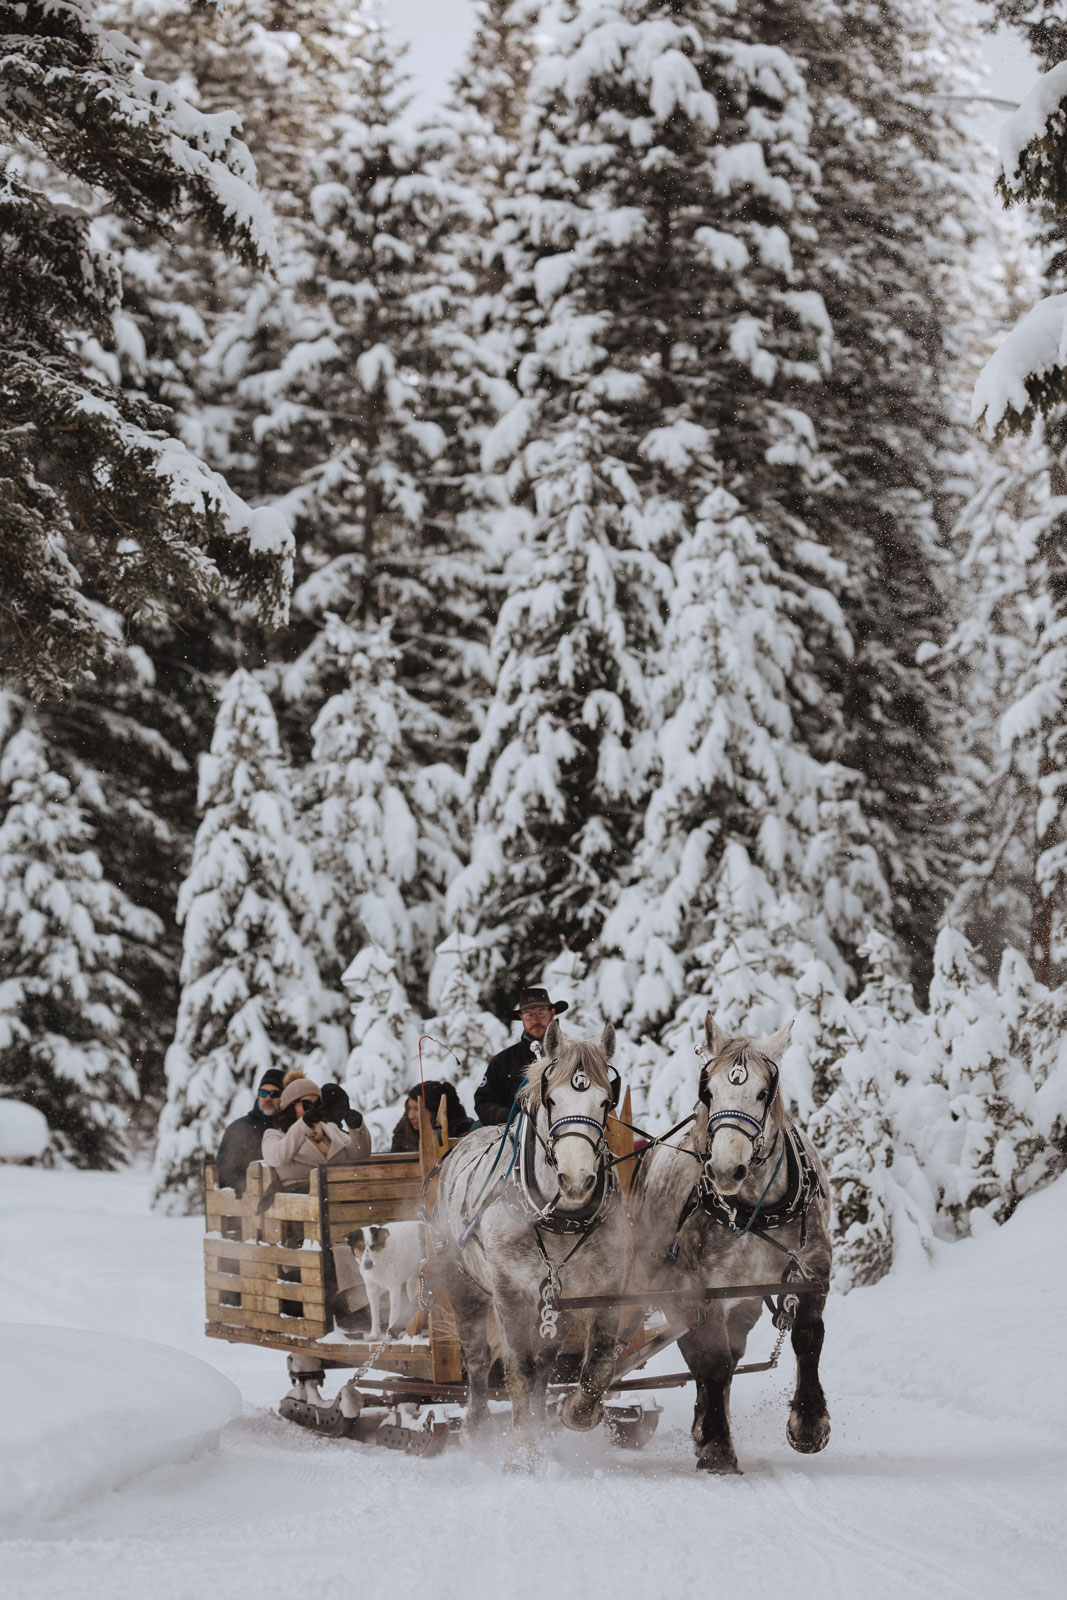 Dashing through the snow for a sleigh ride dinner, at the Lone Mountain Ranch.